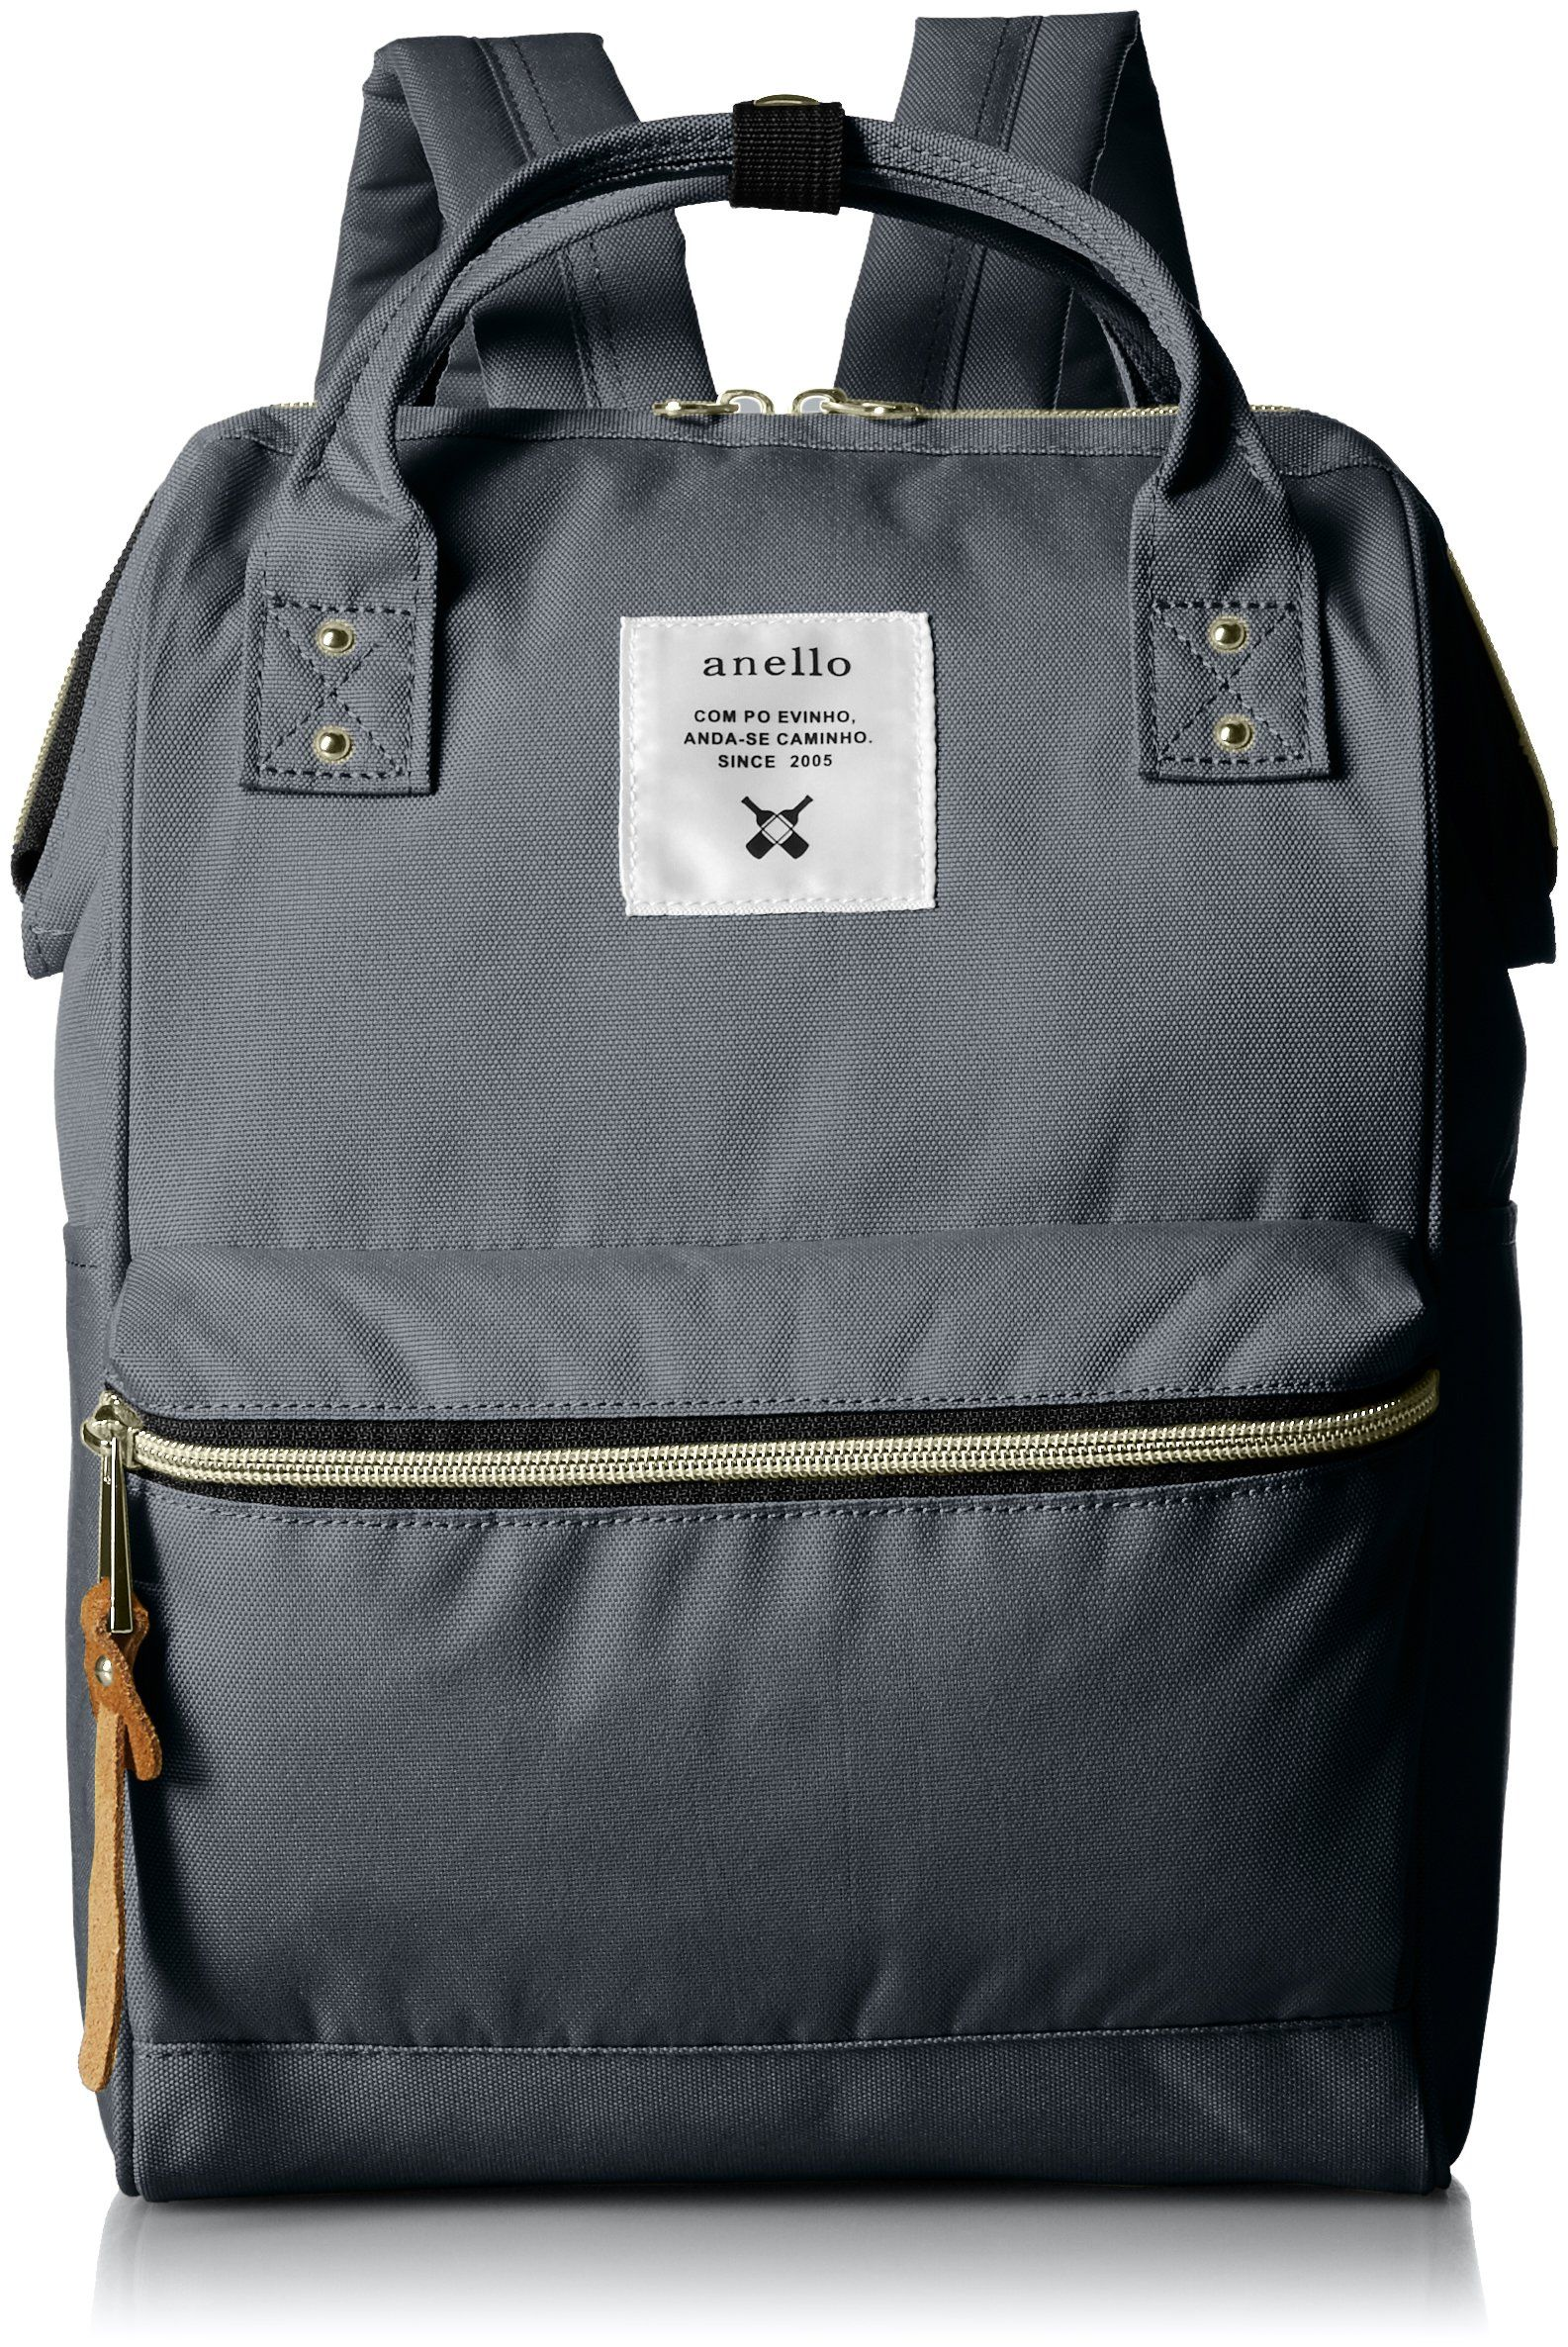 e1cf6c222fd2 anello  AT-B0197B small backpack with side pockets (Charcoal gray). Imported